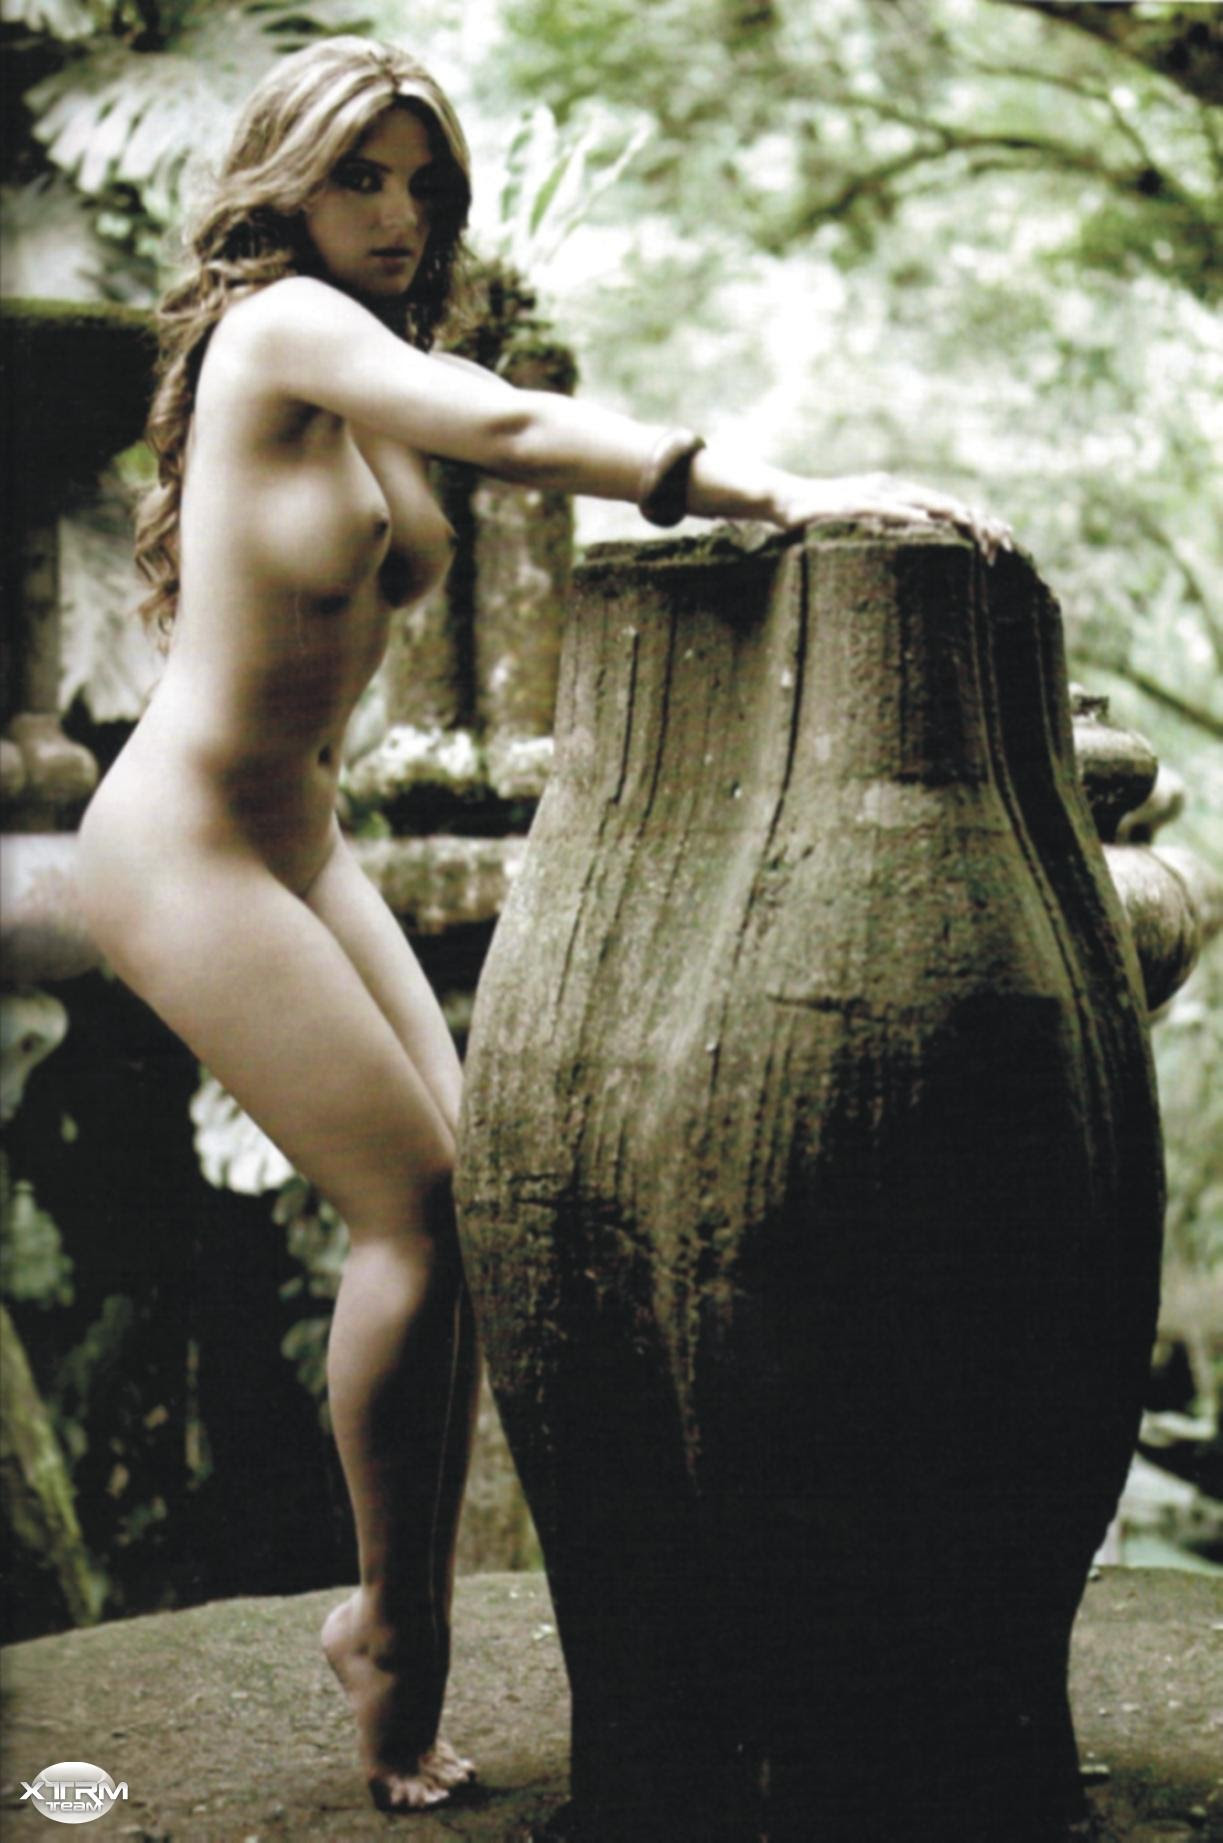 nude women ipod touch videos